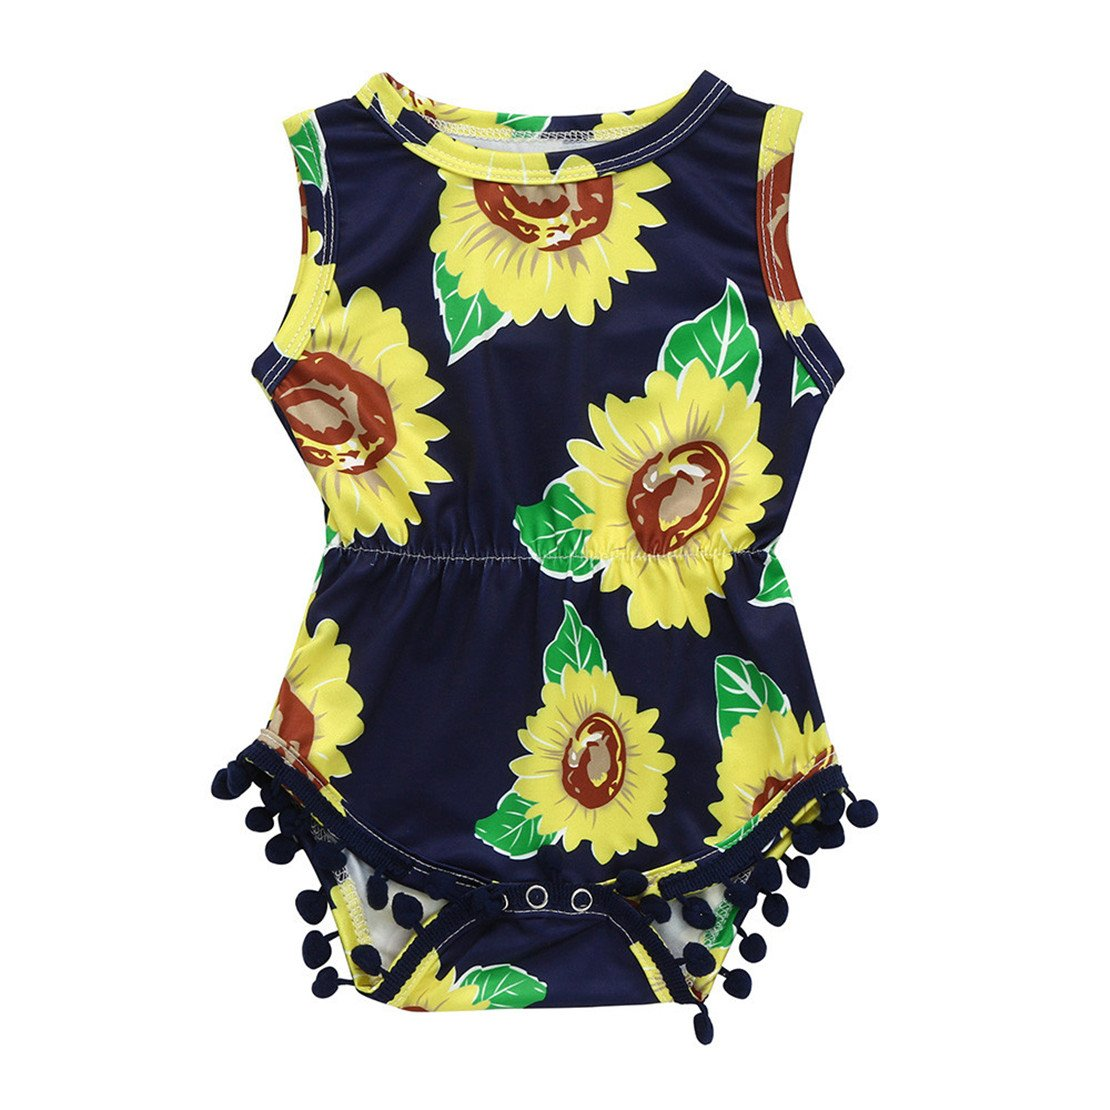 03c86e93c9d Amazon.com  ZHANGVIP Infant Toddler Kids Baby Girls Sunflower Printed Romper  Sleeveless Jumpsuit Playsuit  Clothing